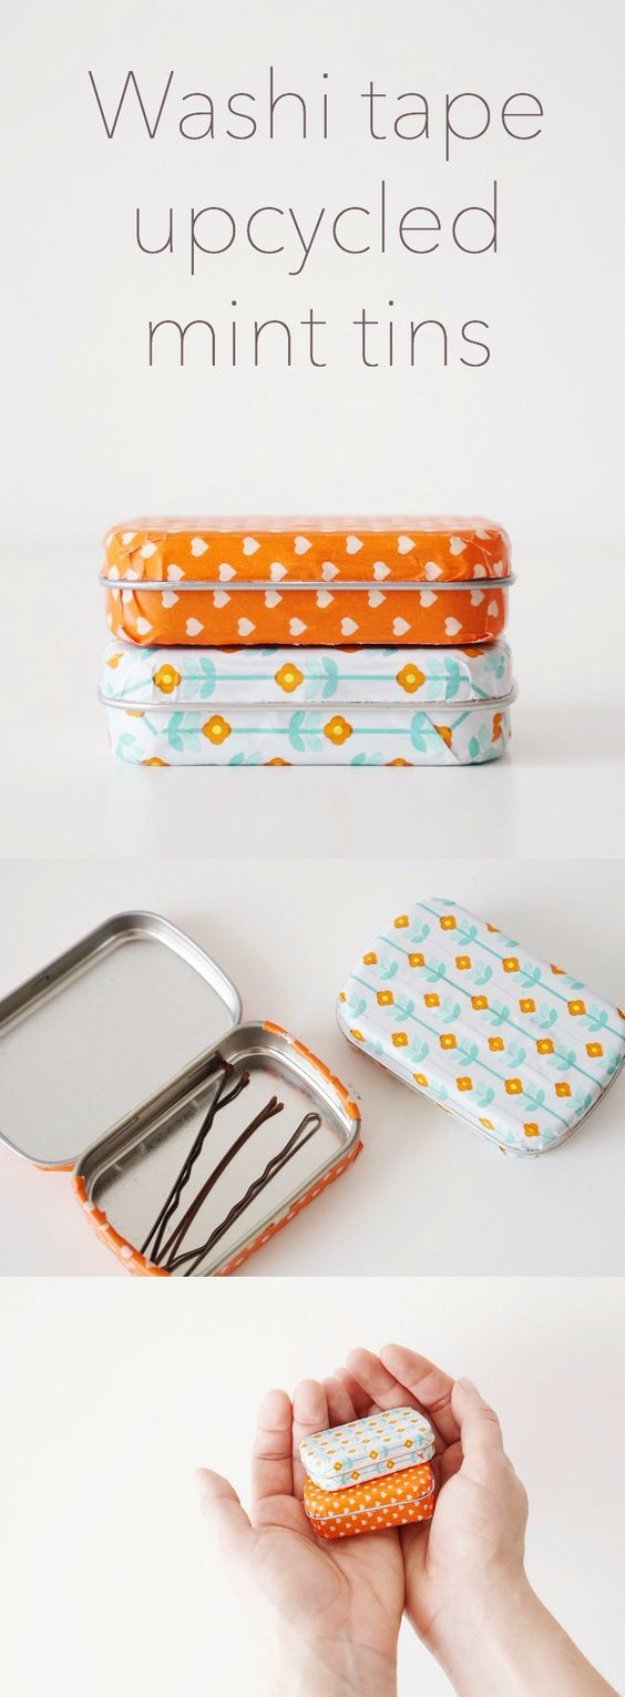 Easy Crafts To Make and Sell - Washi Tape Upcycled Mint Tins - Cool Homemade Craft Projects You Can Sell On Etsy, at Craft Fairs, Online and in Stores. Quick and Cheap DIY Ideas that Adults and Even Teens #craftstosell #diyideas #crafts